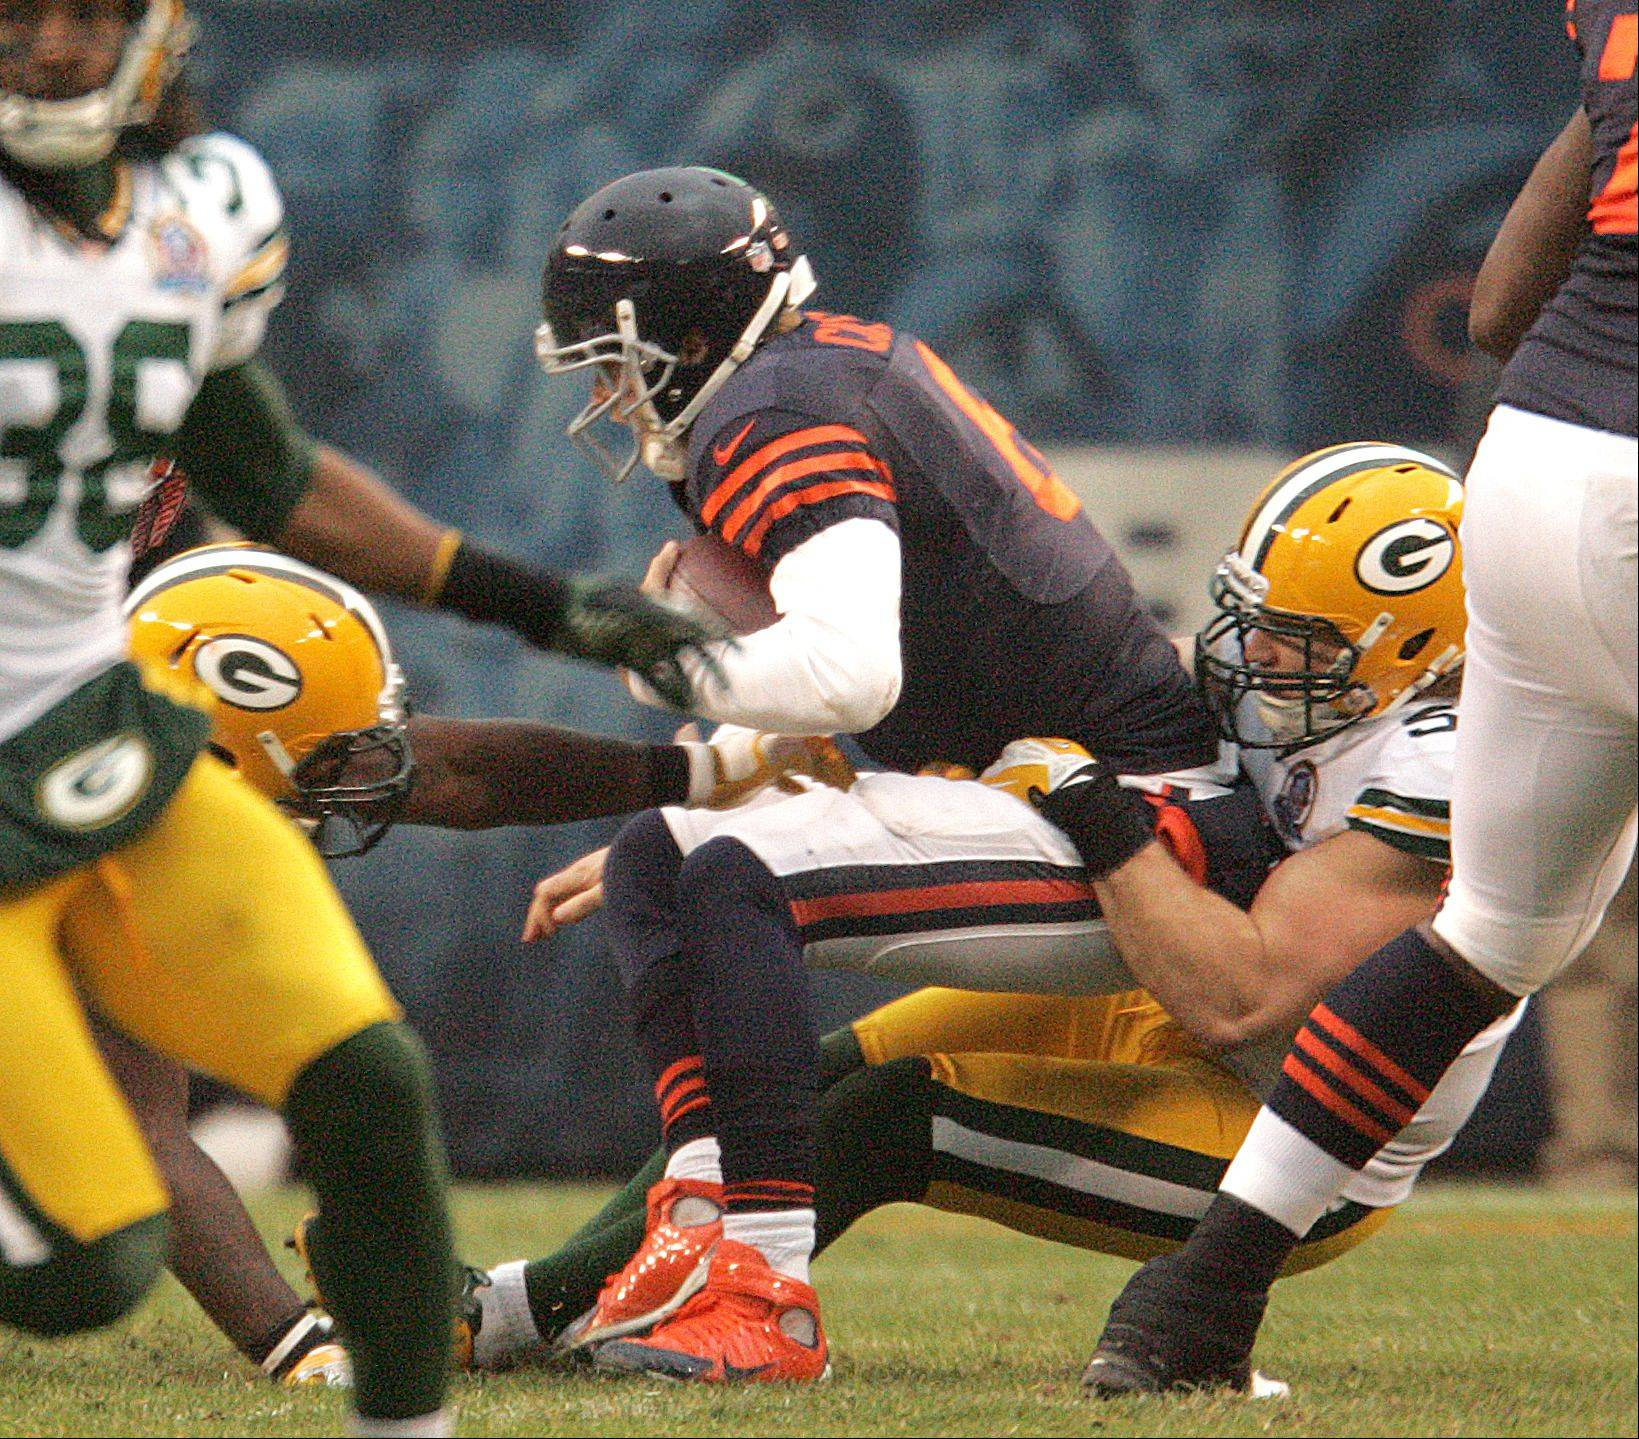 Playoffs?!? Not after Packers beat Bears 21-13